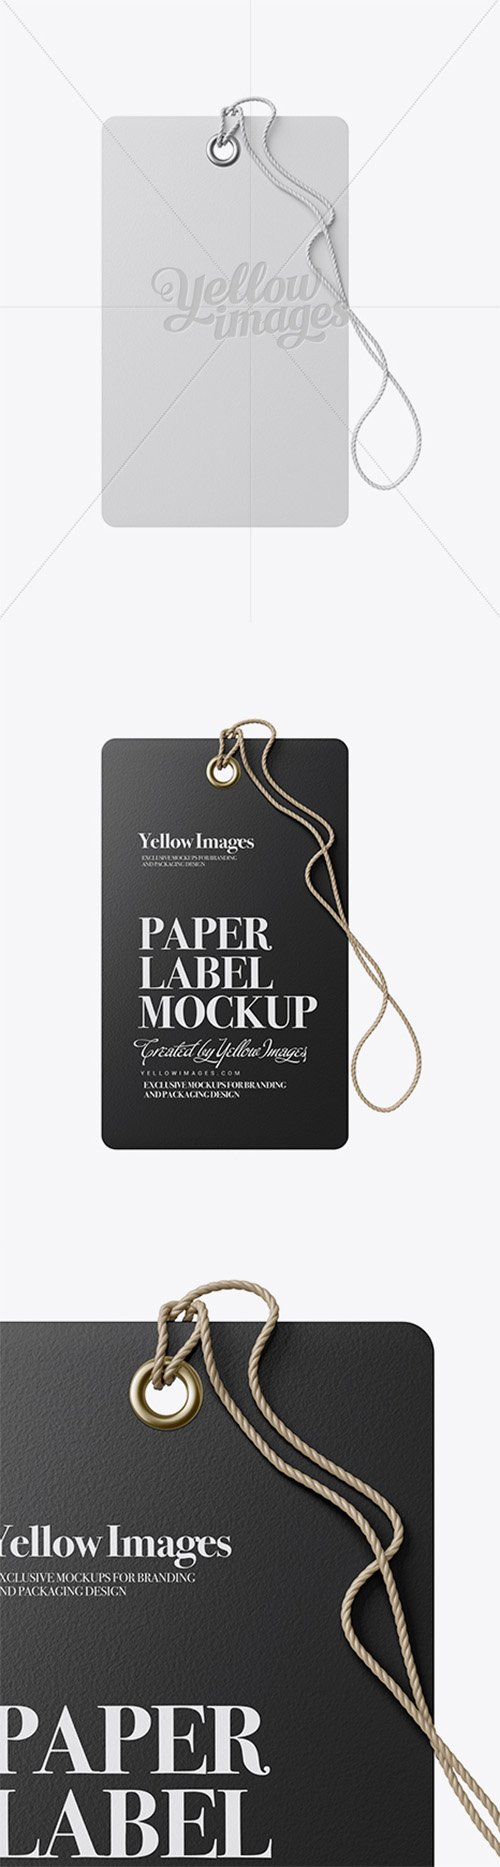 Paper Label With Rope Mockup 19060 TIF